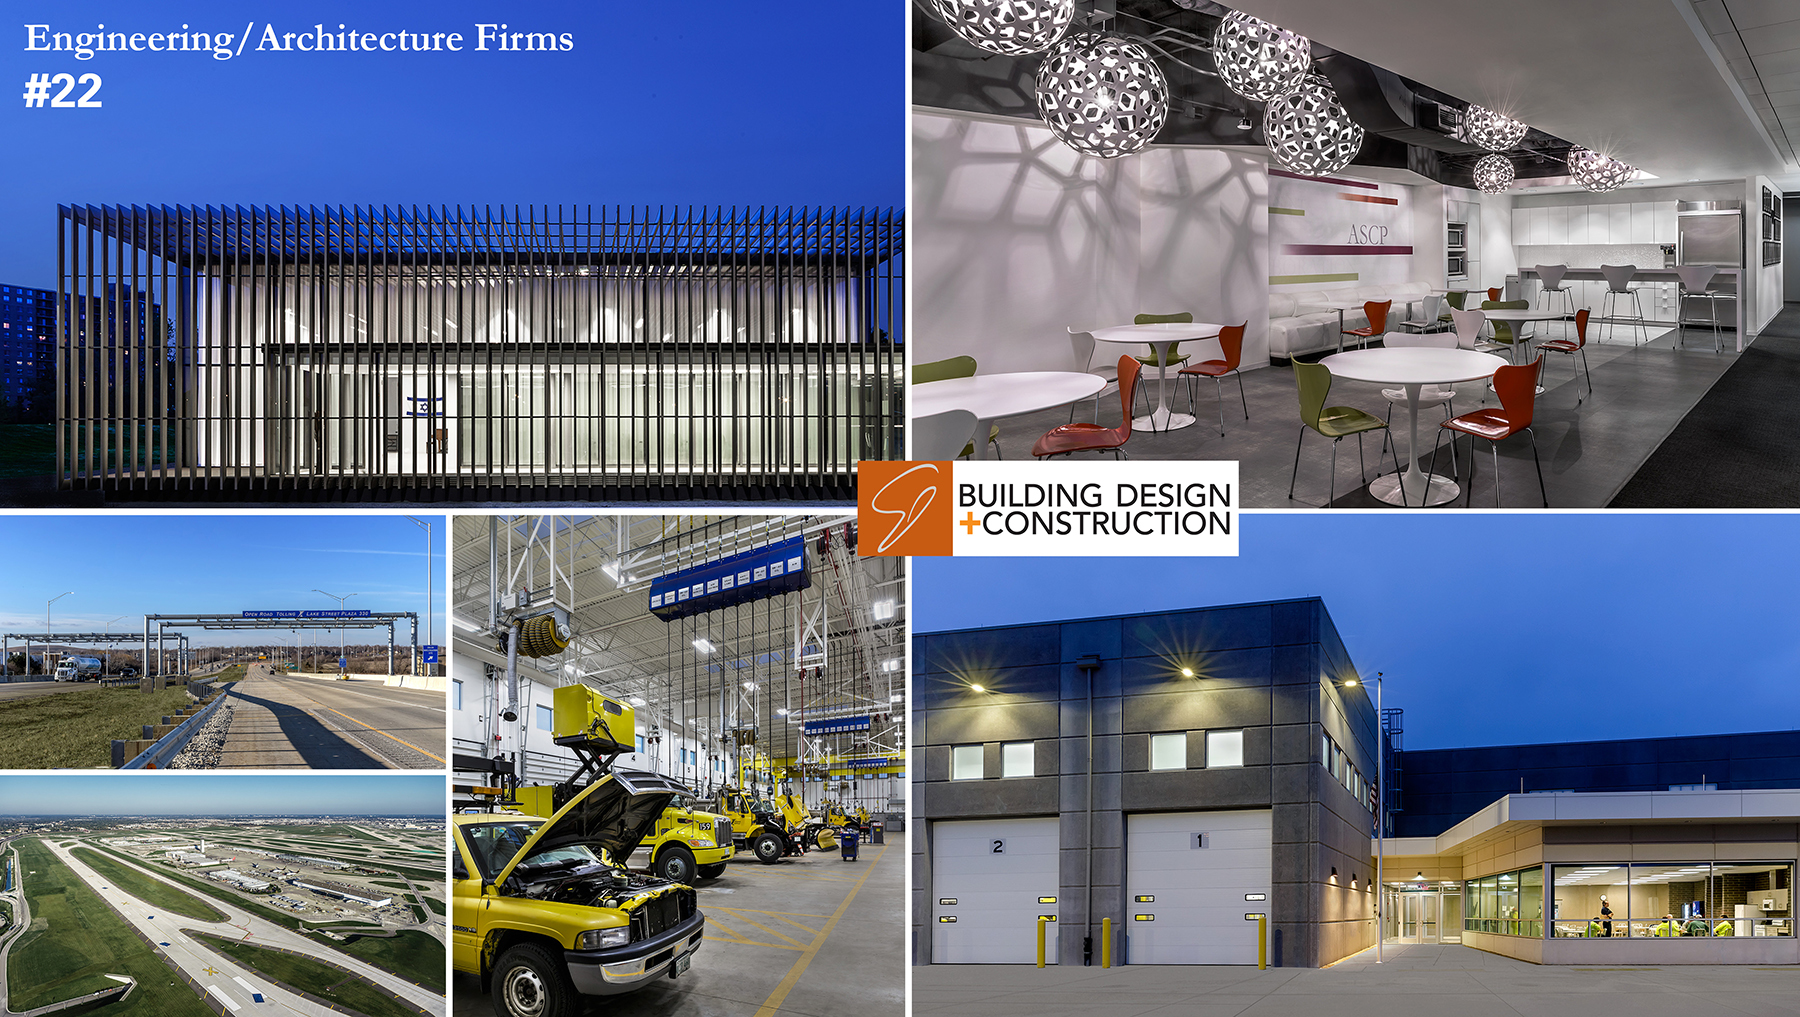 Epstein for Architecture and engineering firms